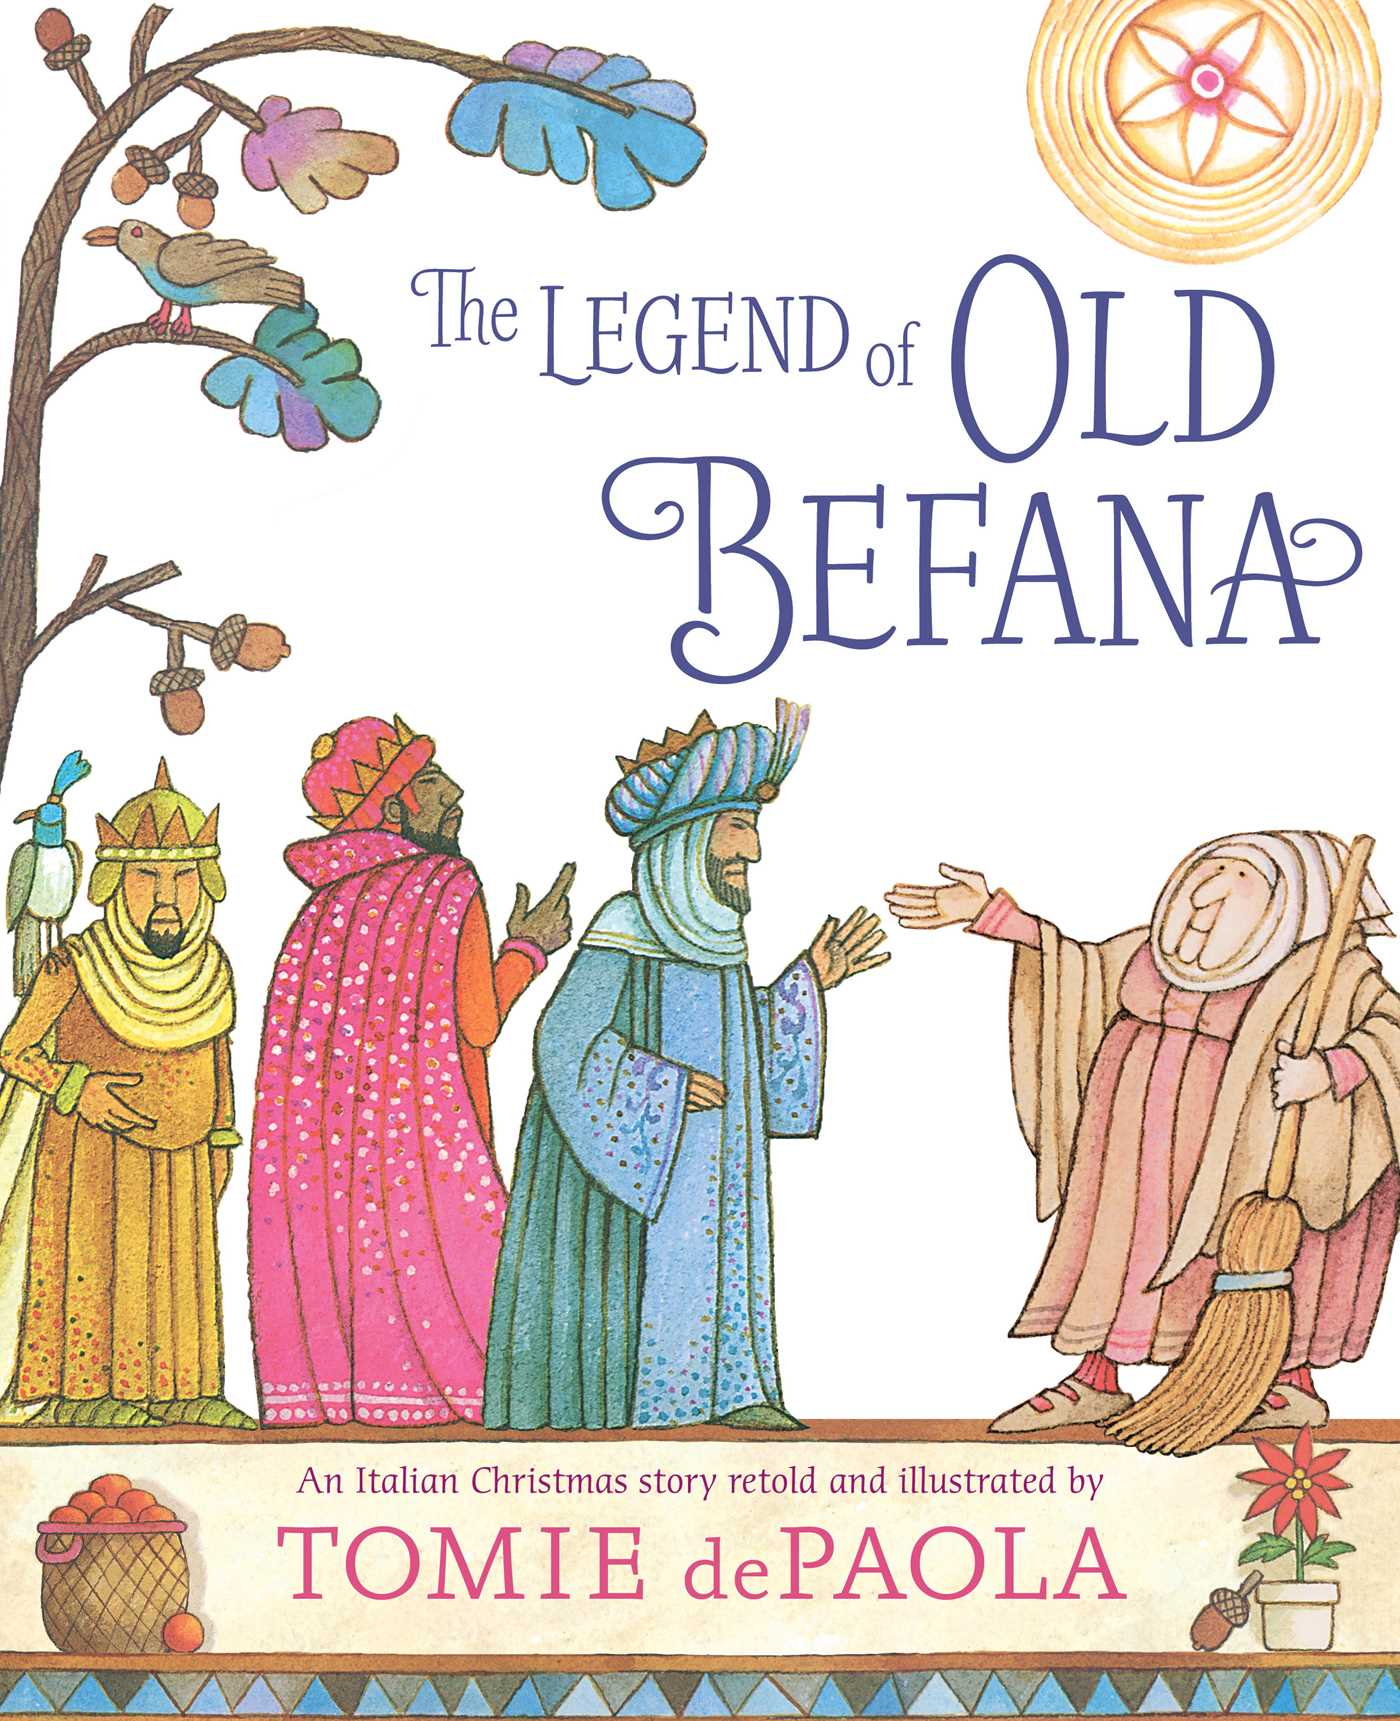 The Legend of Old Befana | Book by Tomie dePaola | Official ...